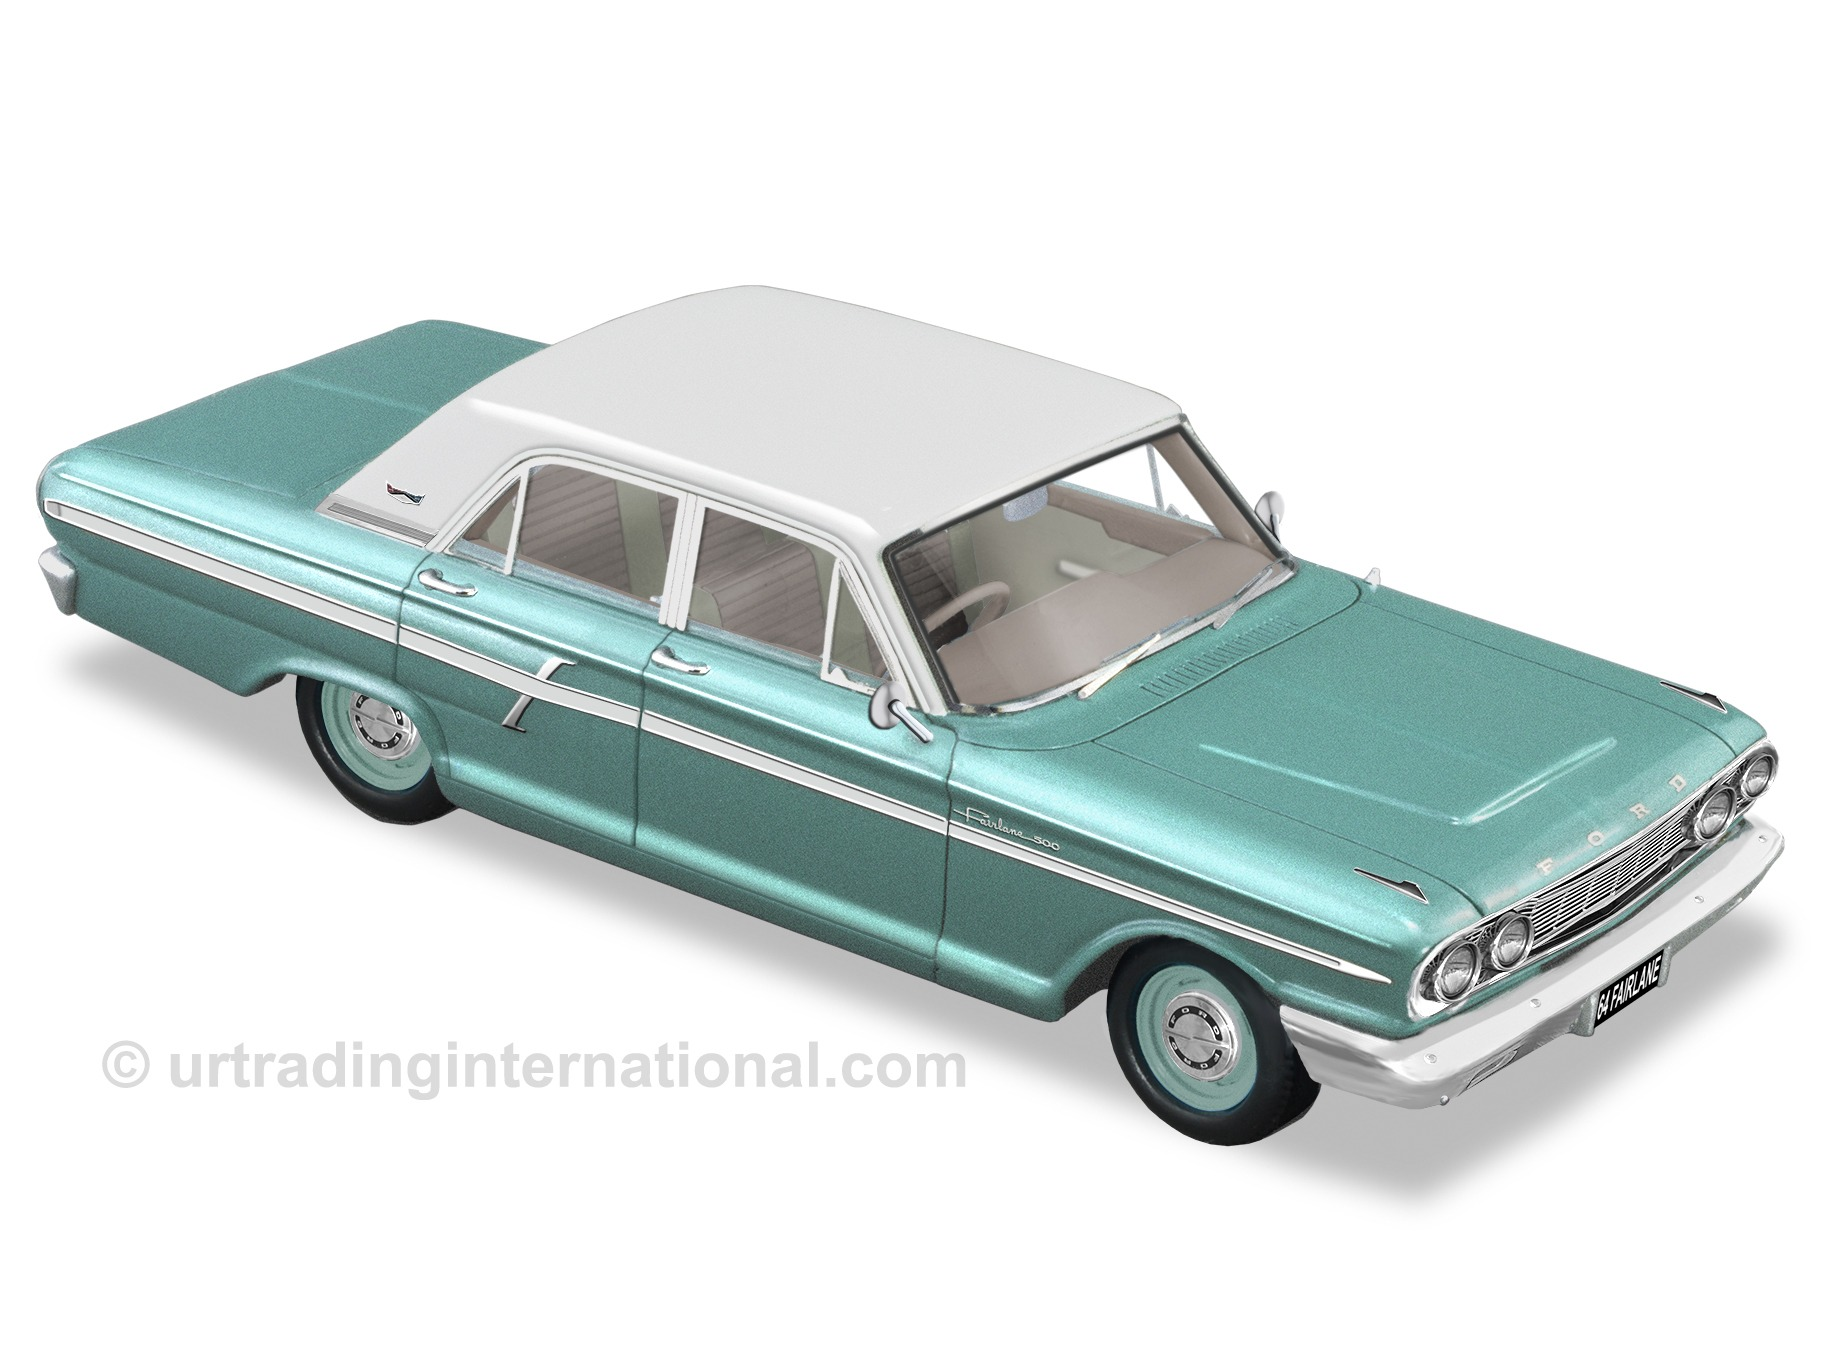 1964 Ford Fairlane Compact – Green